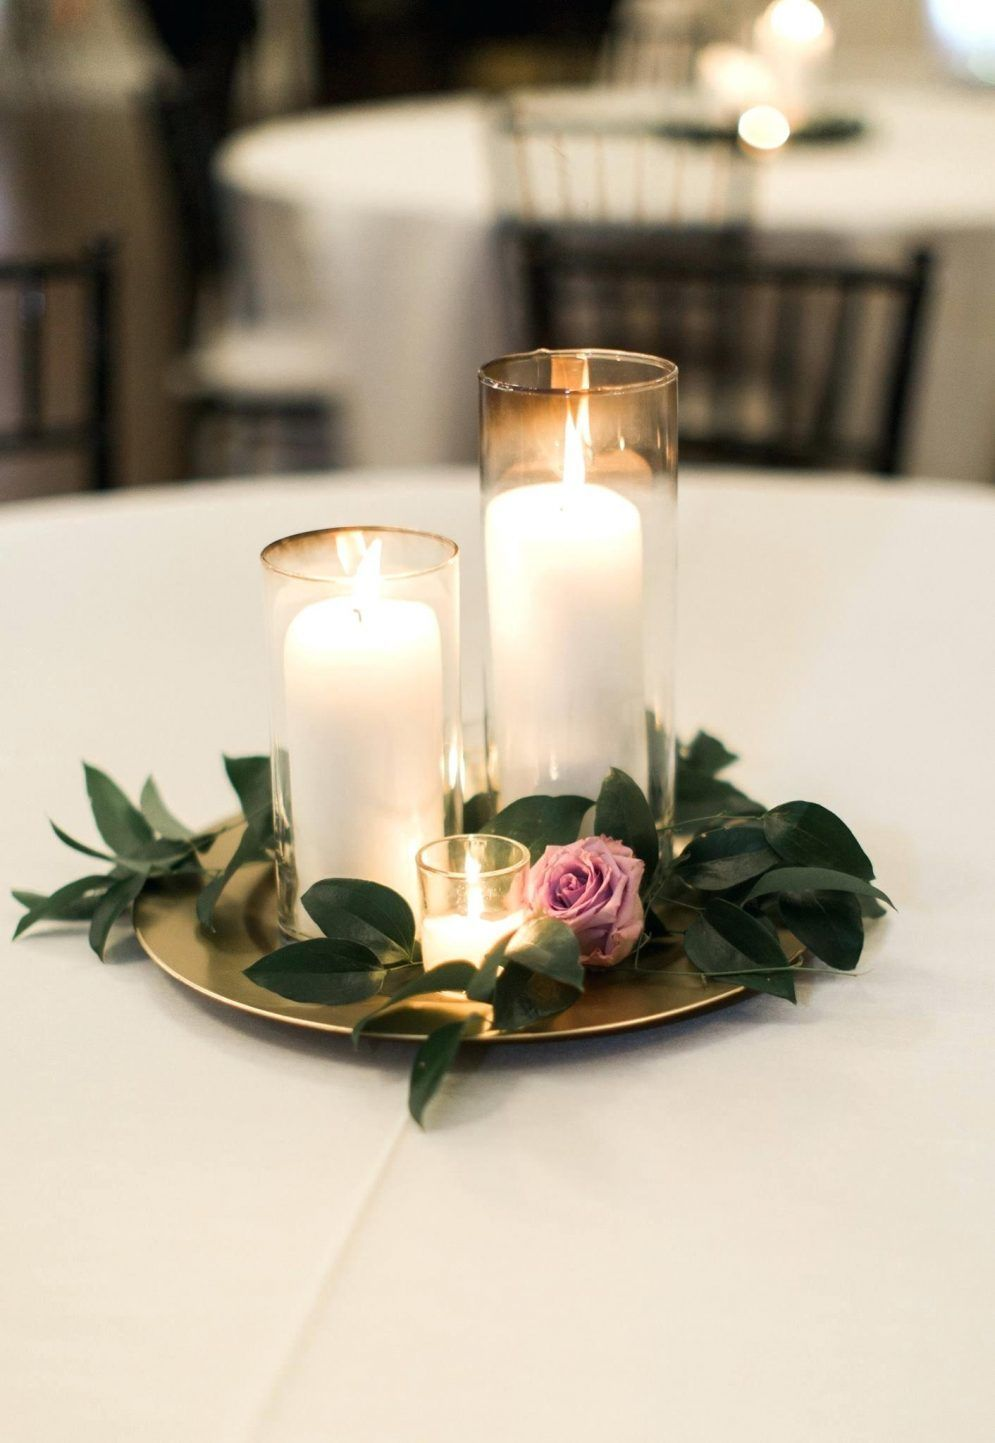 Diy wedding table decorations ideas  Diy Wedding Centerpieces Ideas On A Budget Cake Table Decoration